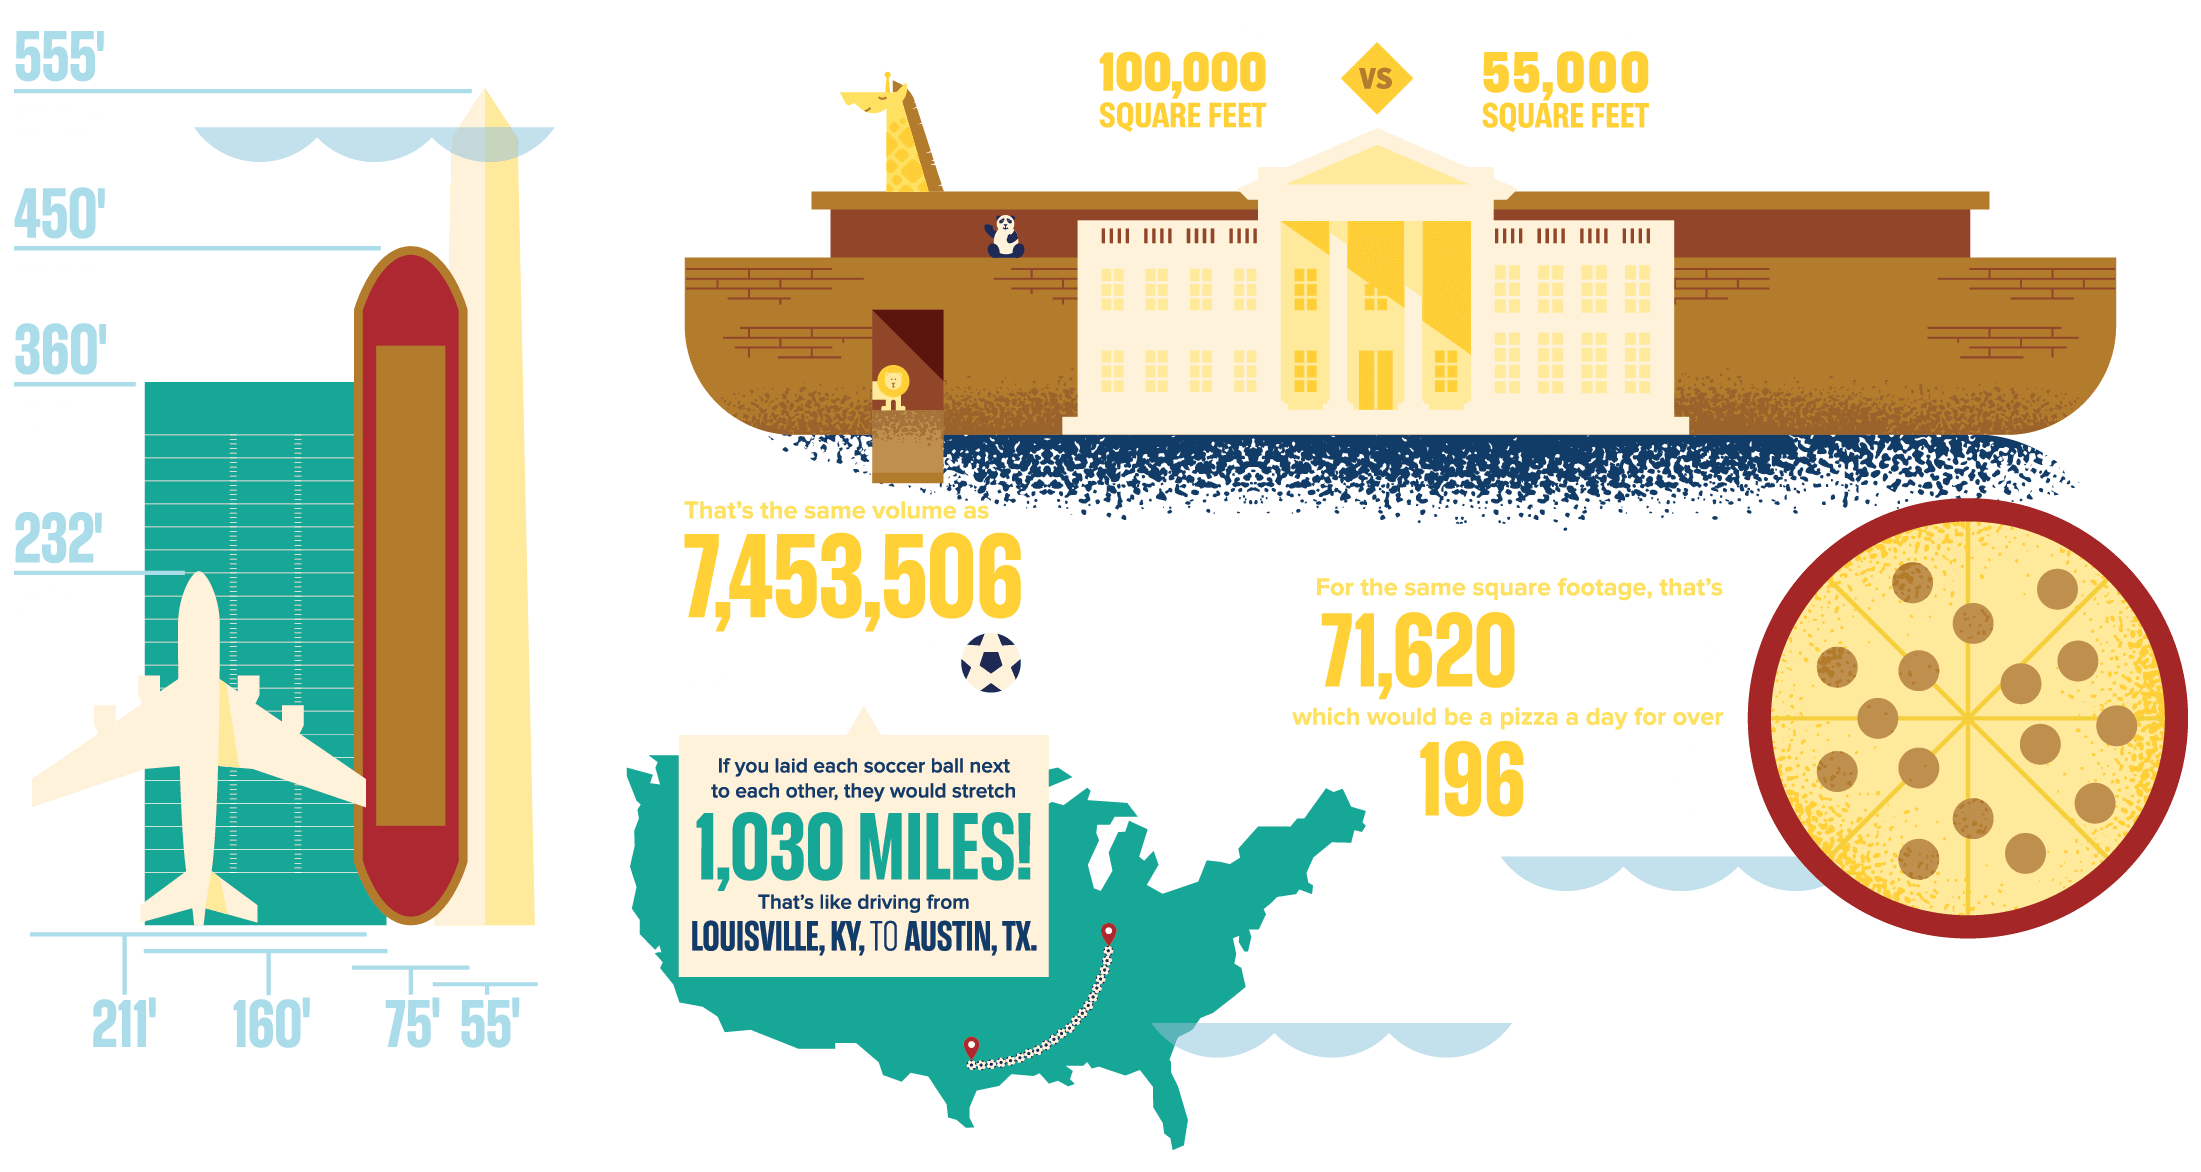 Noah's Ark was about 100,000 Square Feet